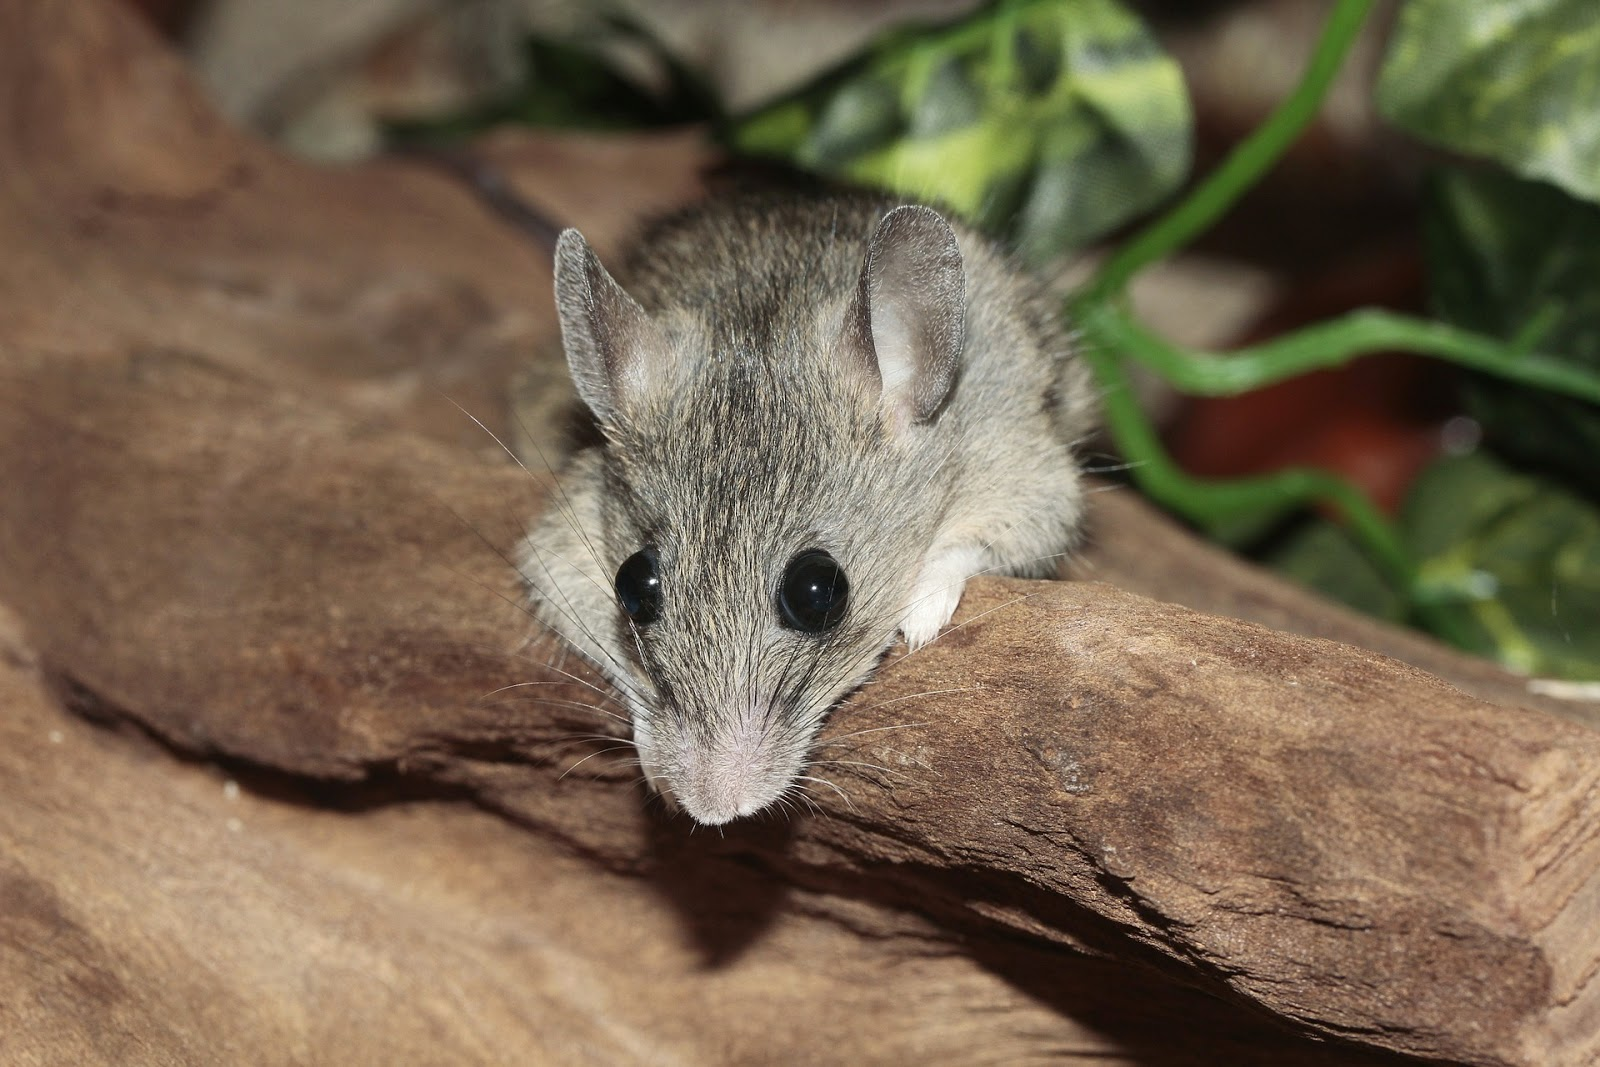 how to kill a mouse quickly and painlessly